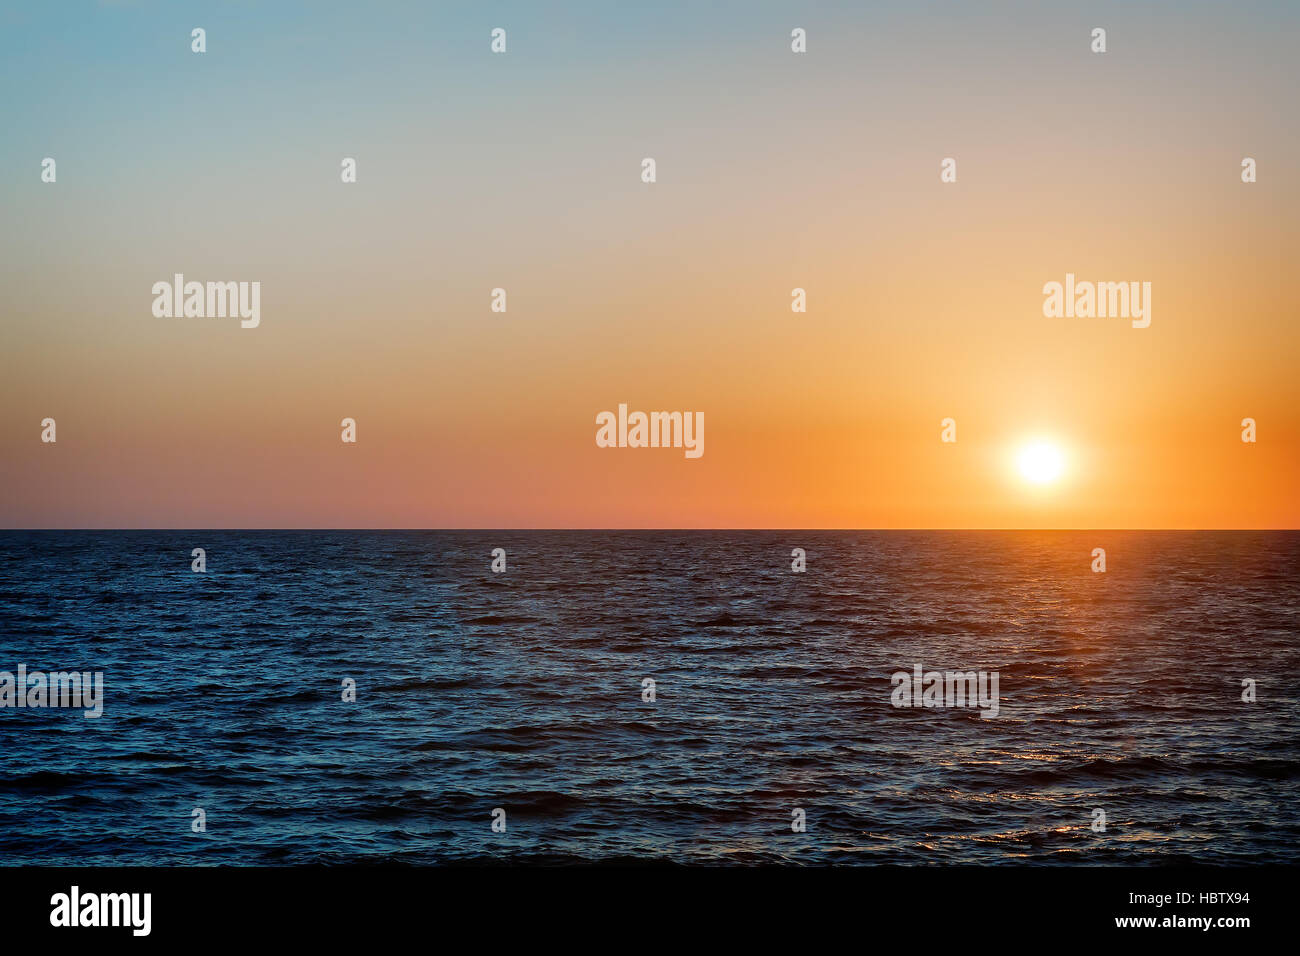 Landscape: sunsets on the sea. - Stock Image